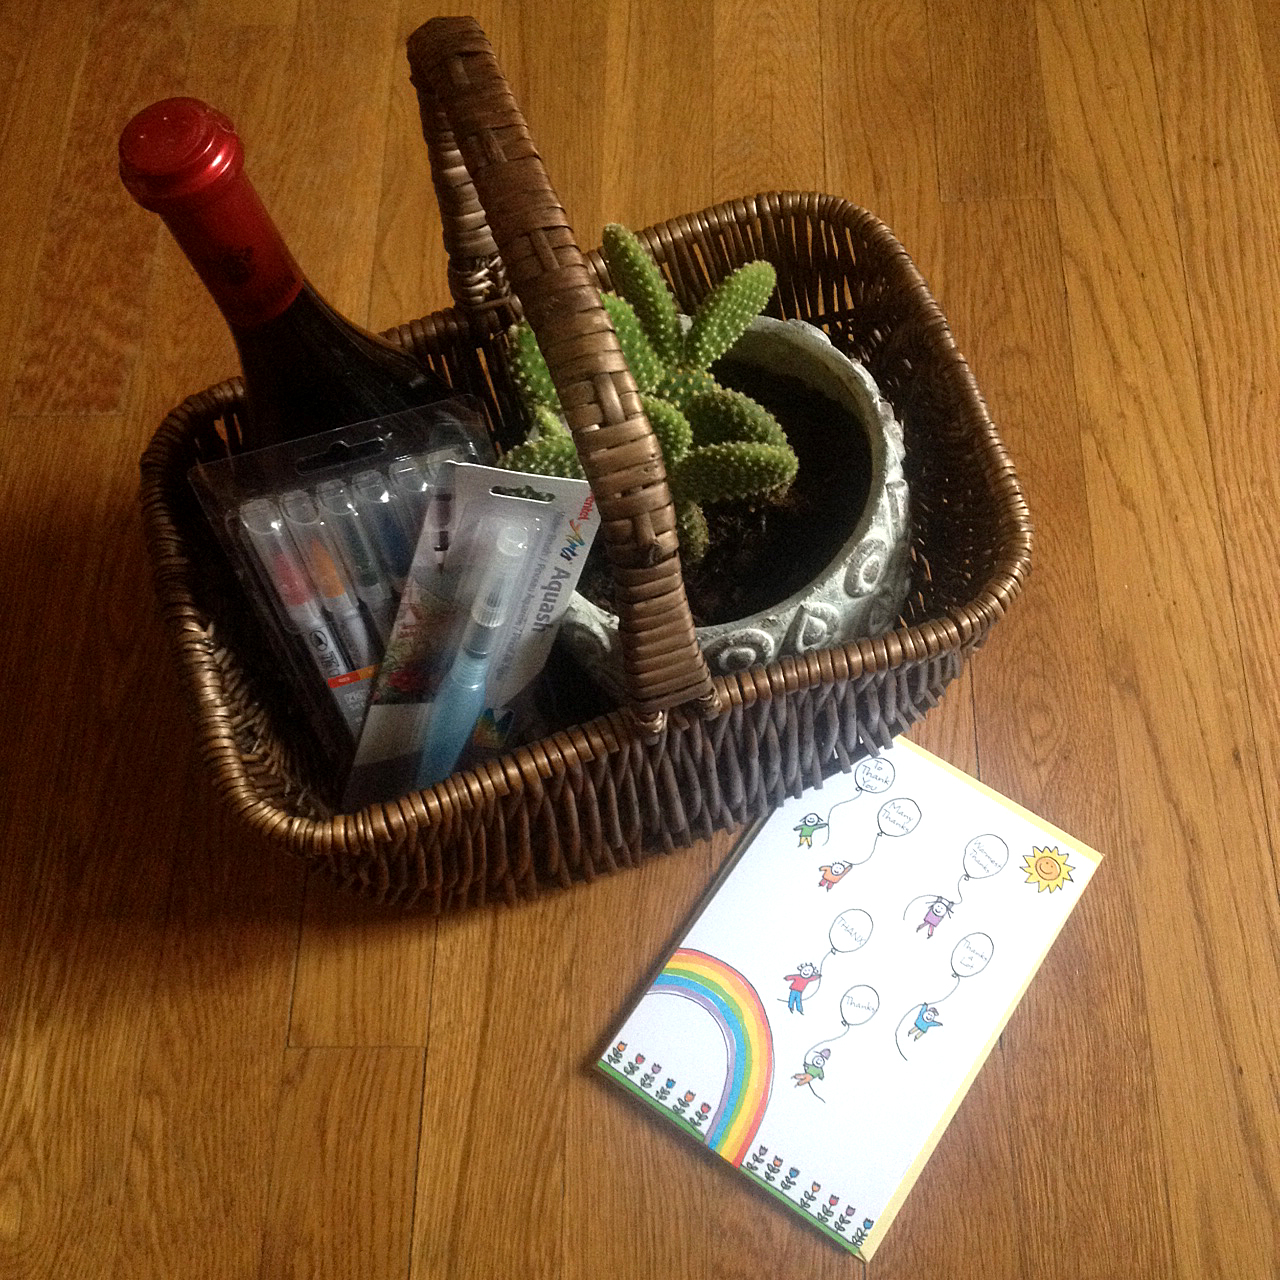 A basket recently found on my doorstep delivered from a good friend